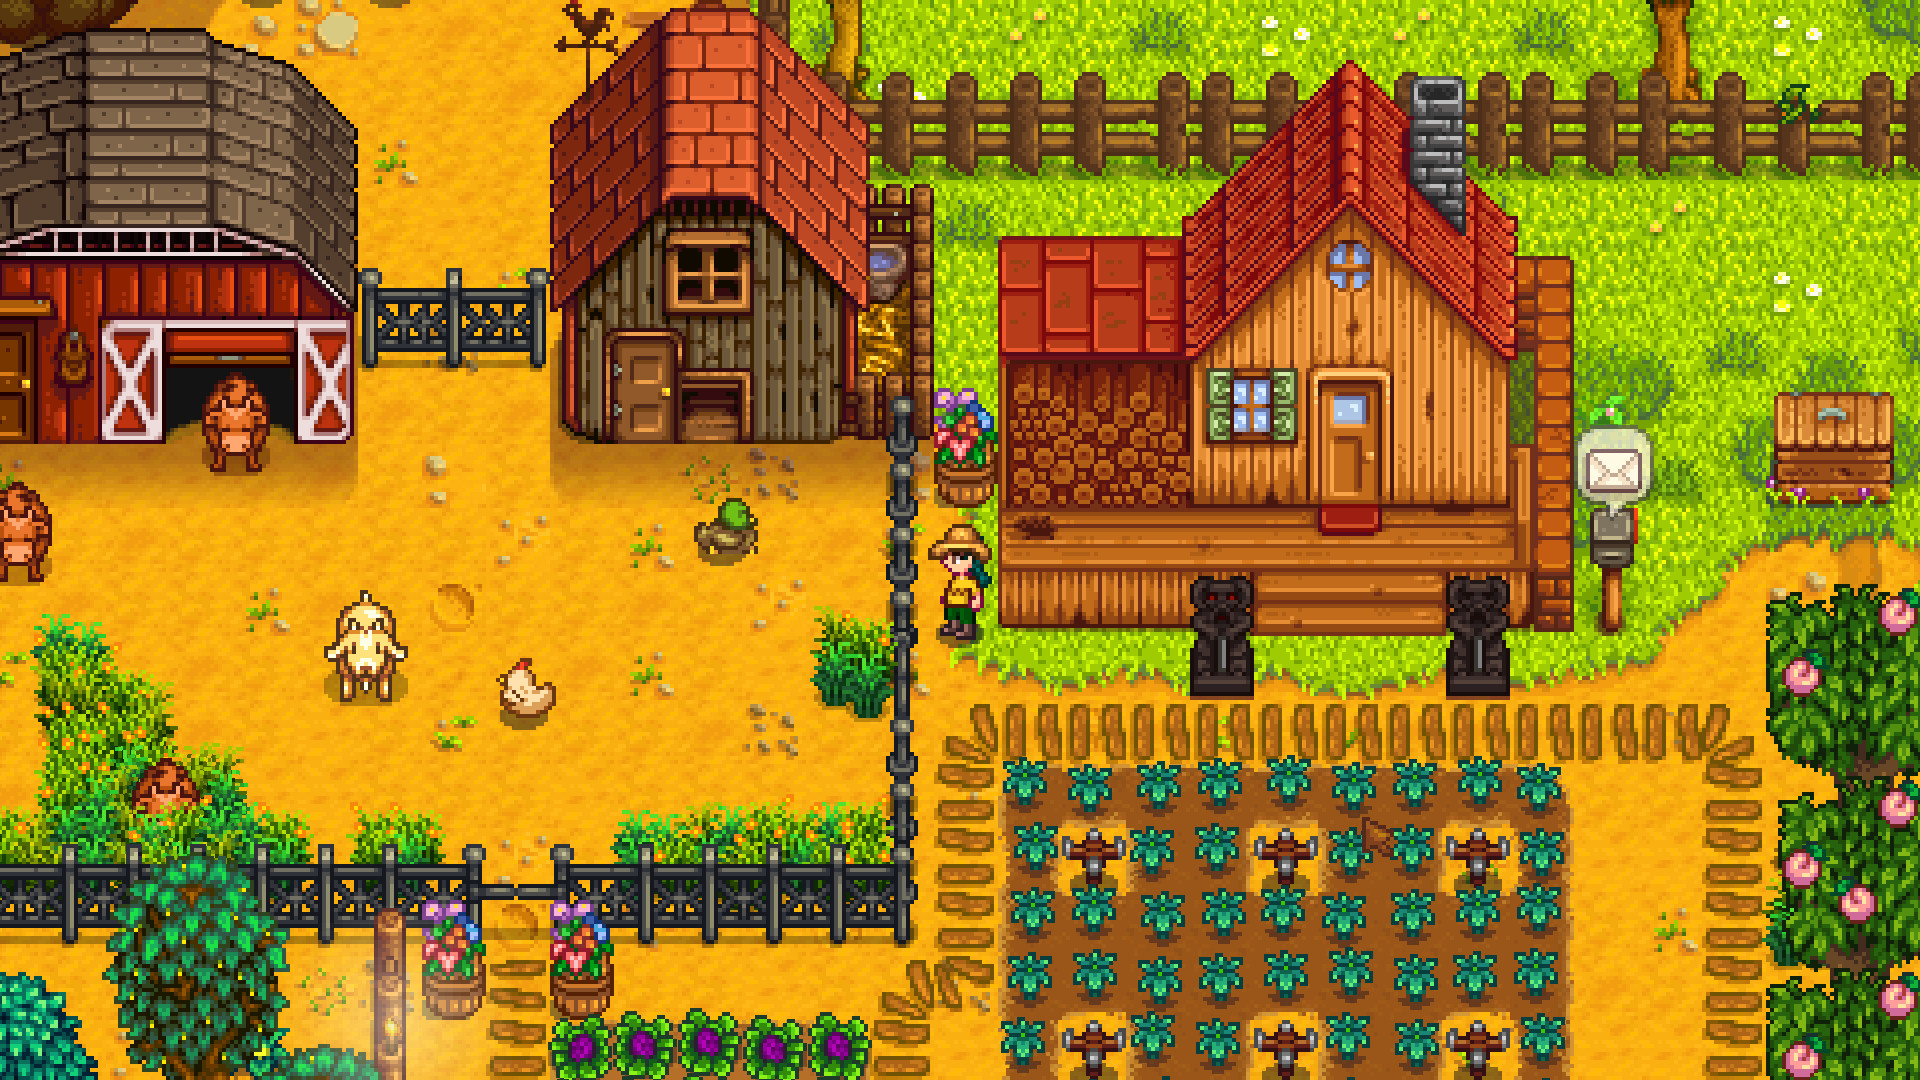 Find the best gaming PC for Stardew Valley